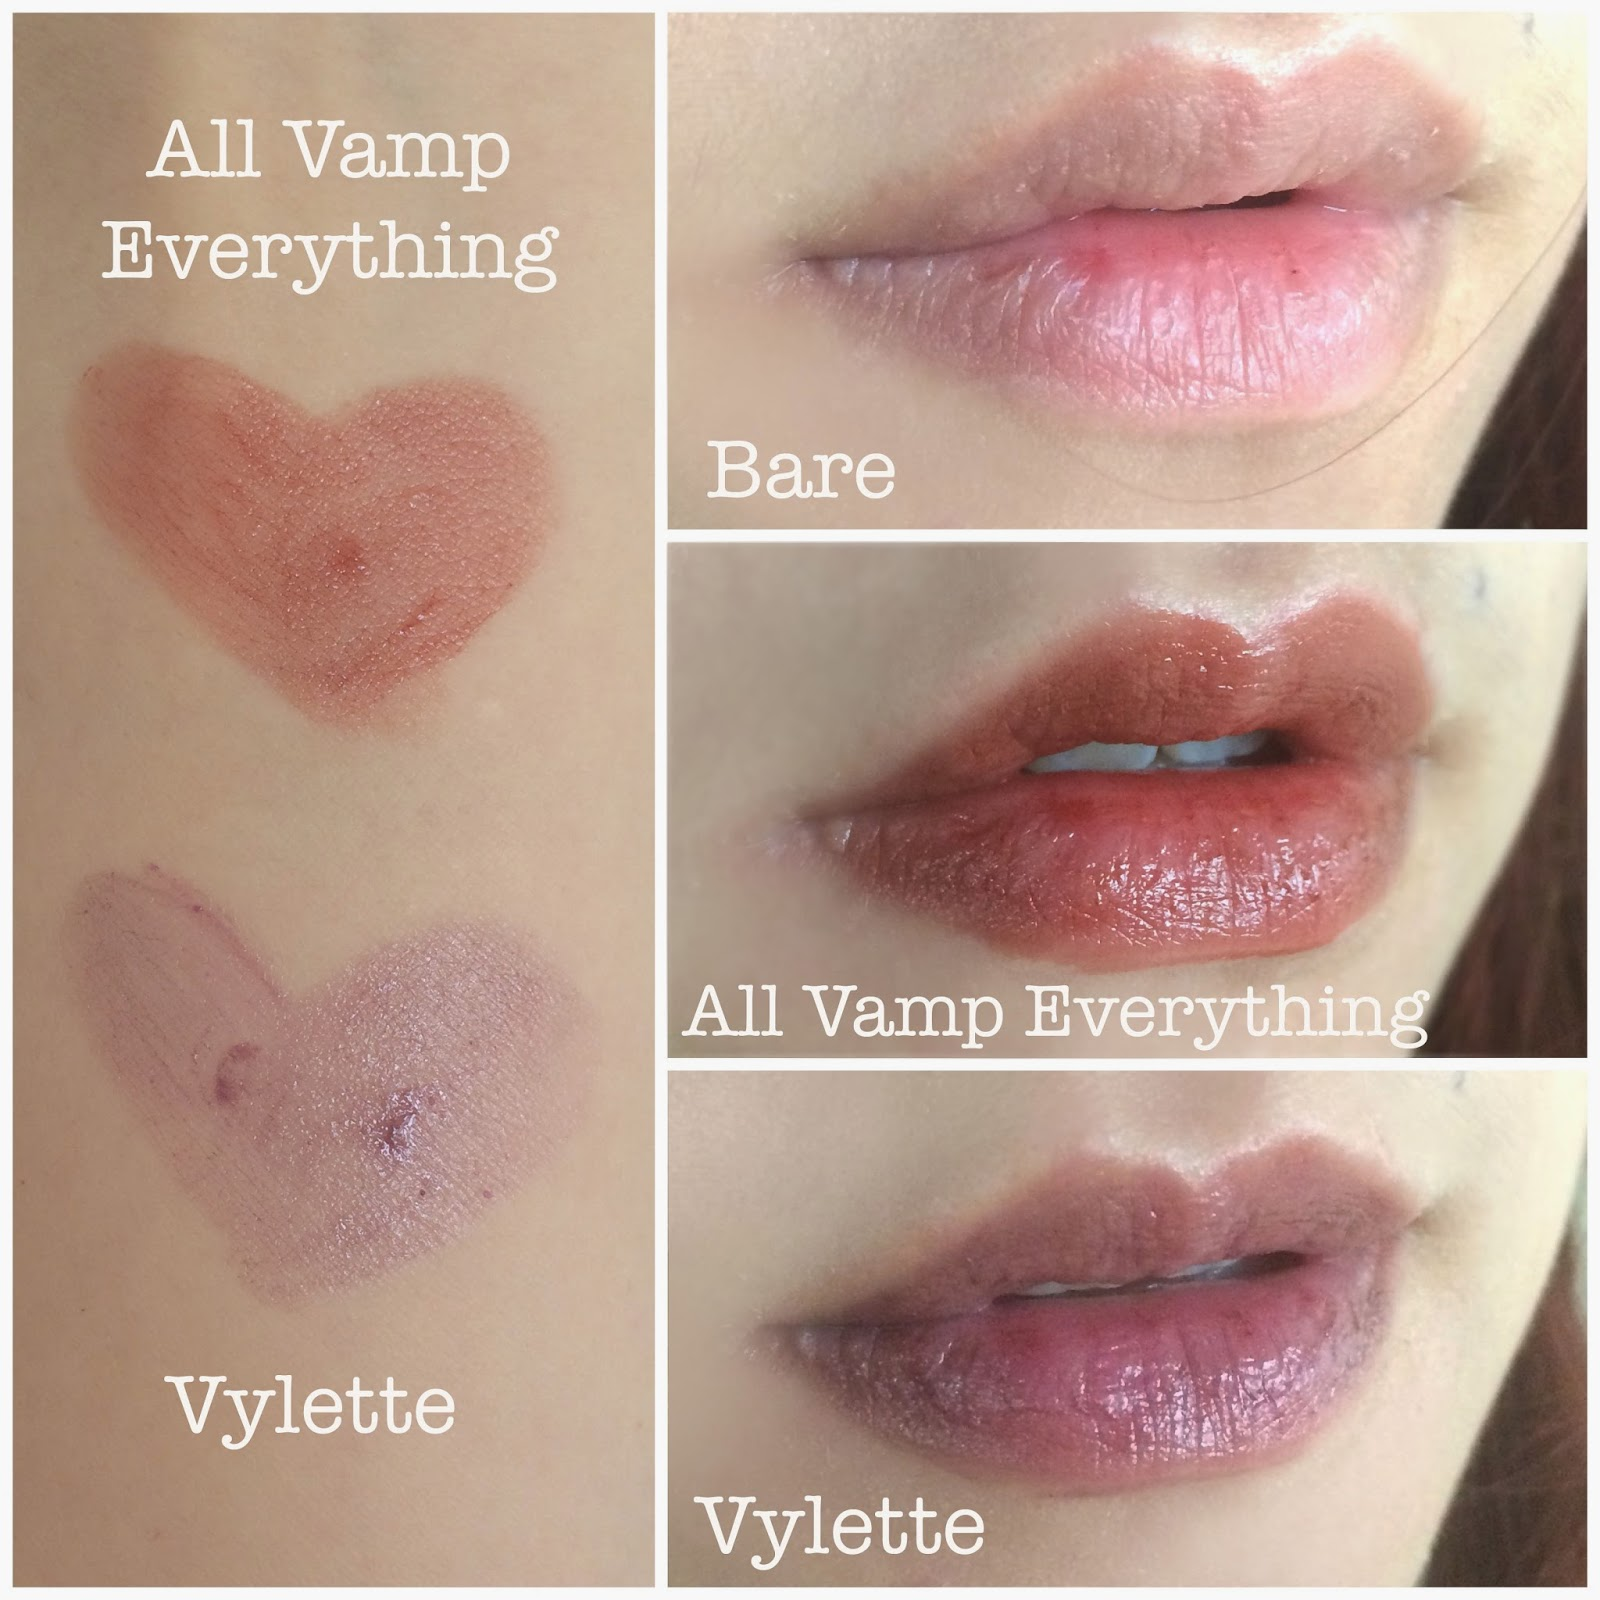 swatches vylette all vamp everything grape kool aid